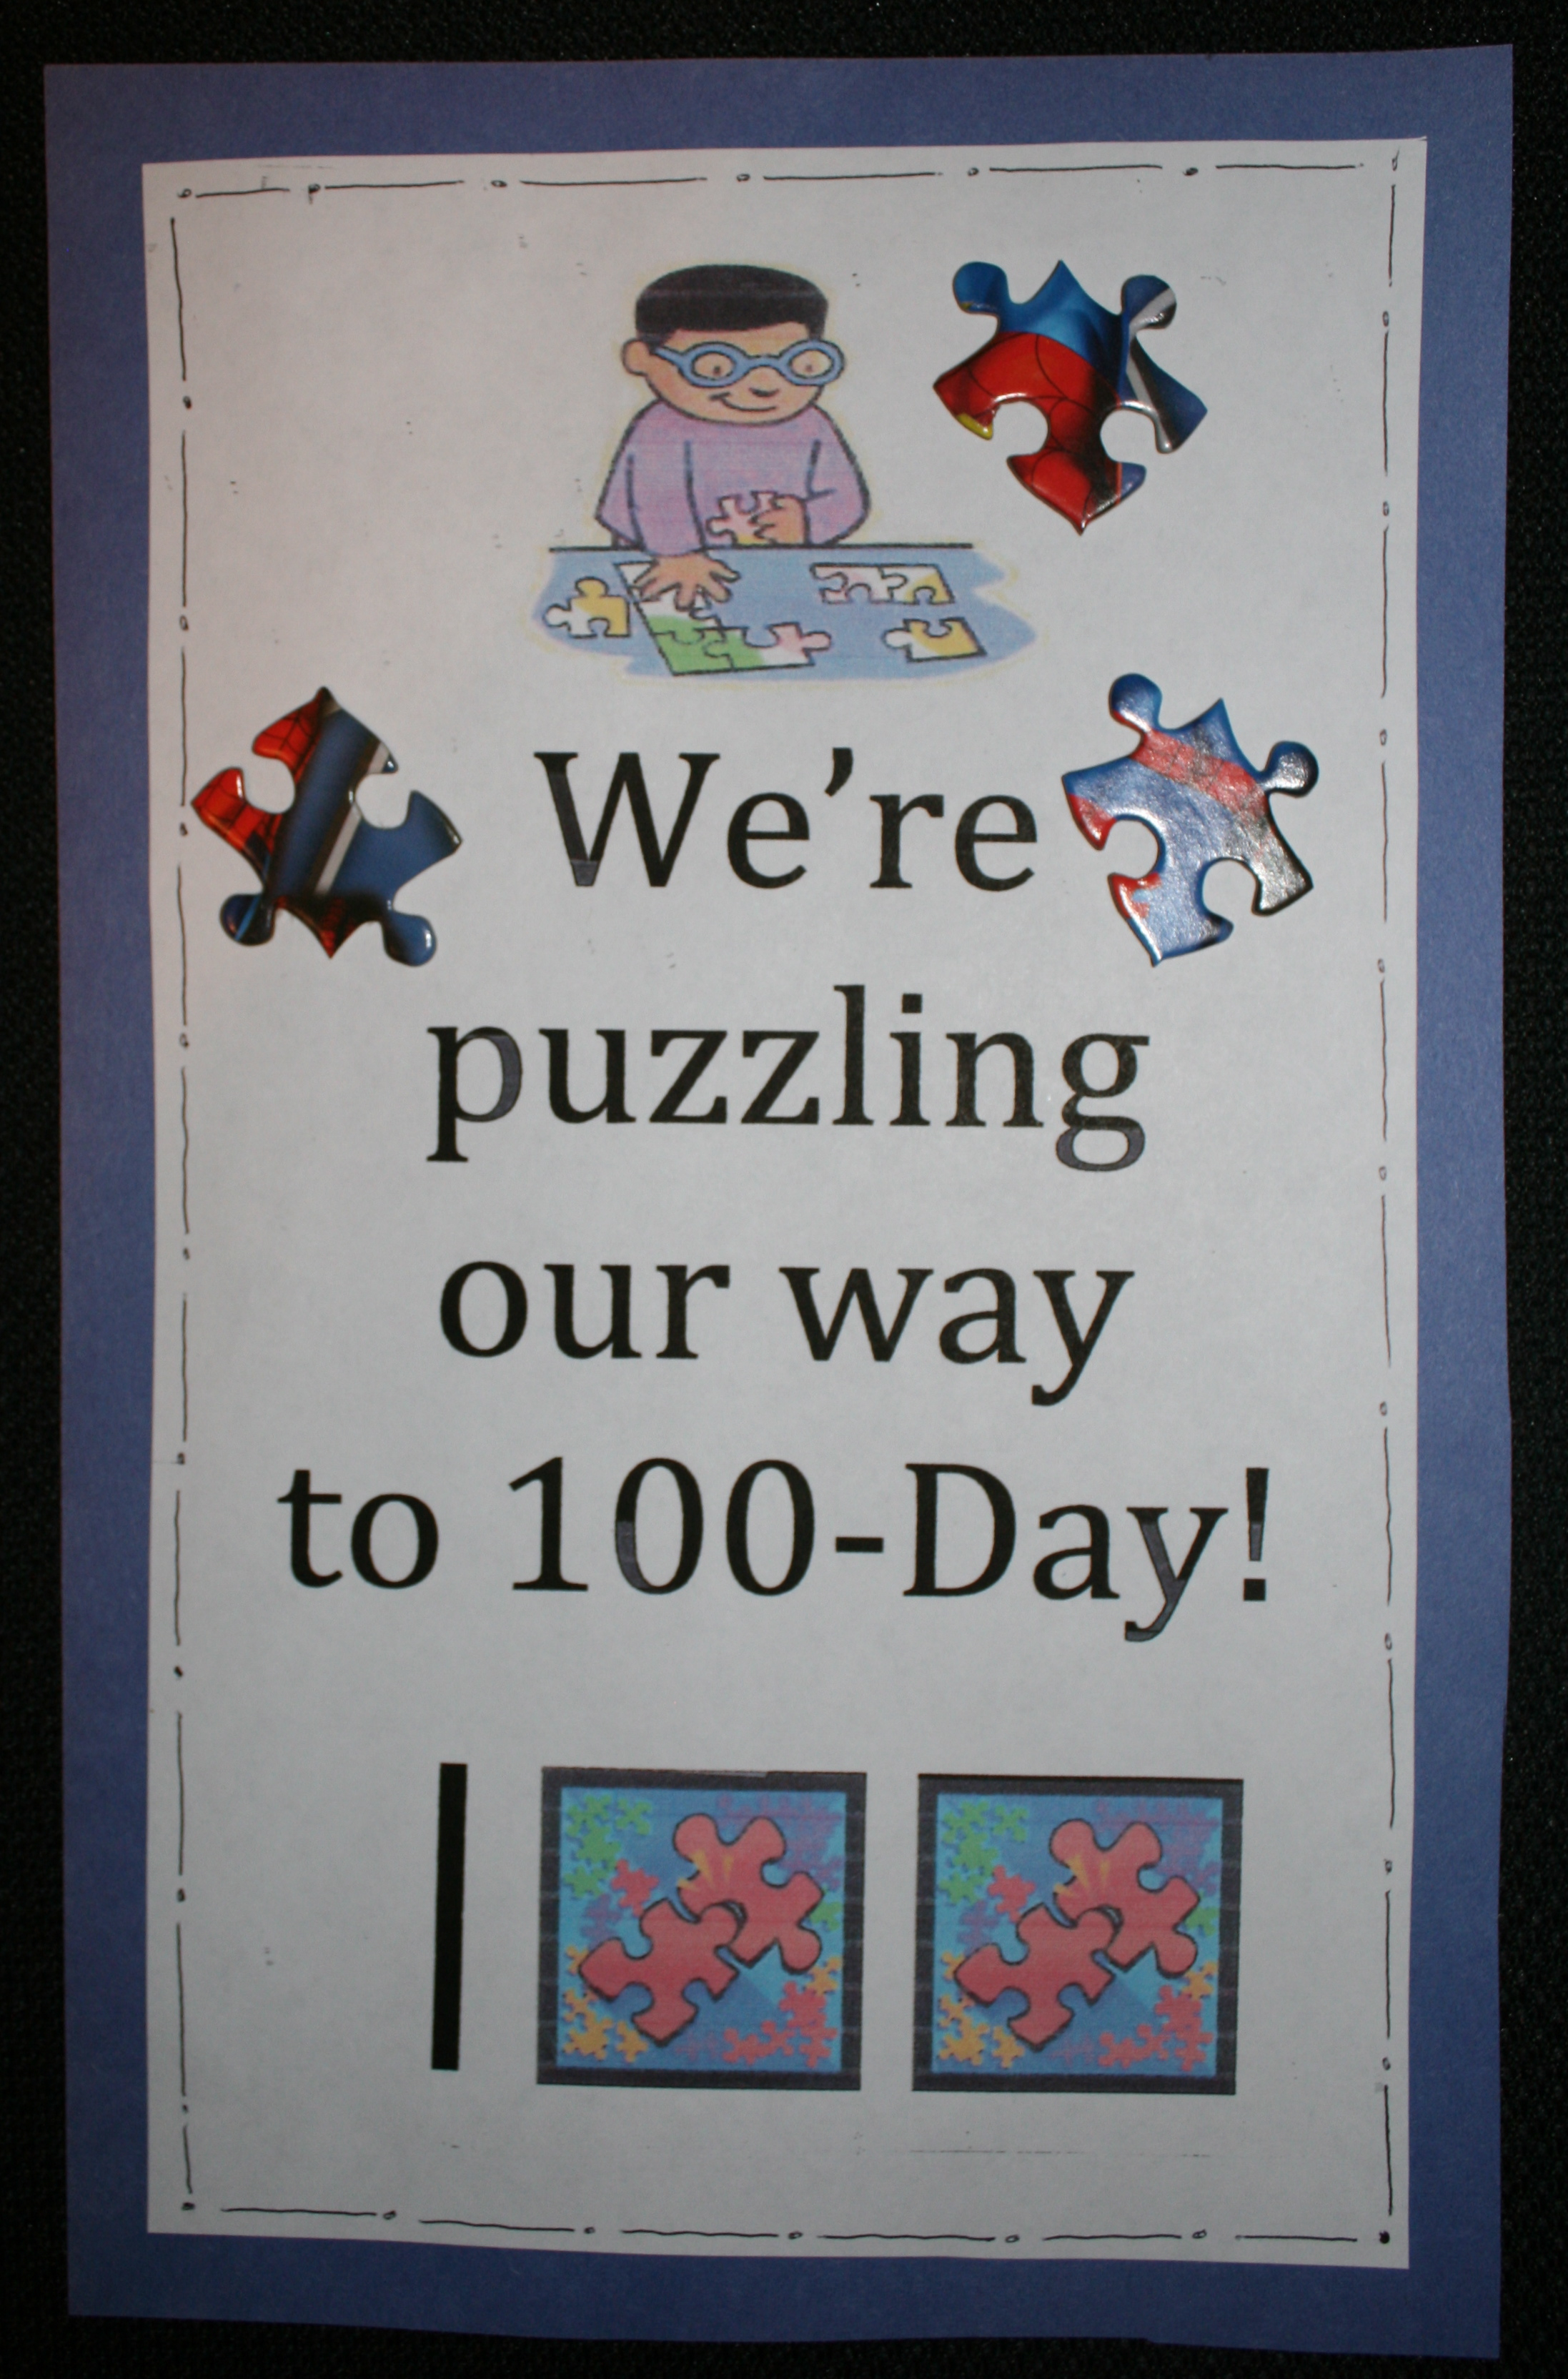 back to school ideas, ideas for the first day of school, ideas for counting to 100 day